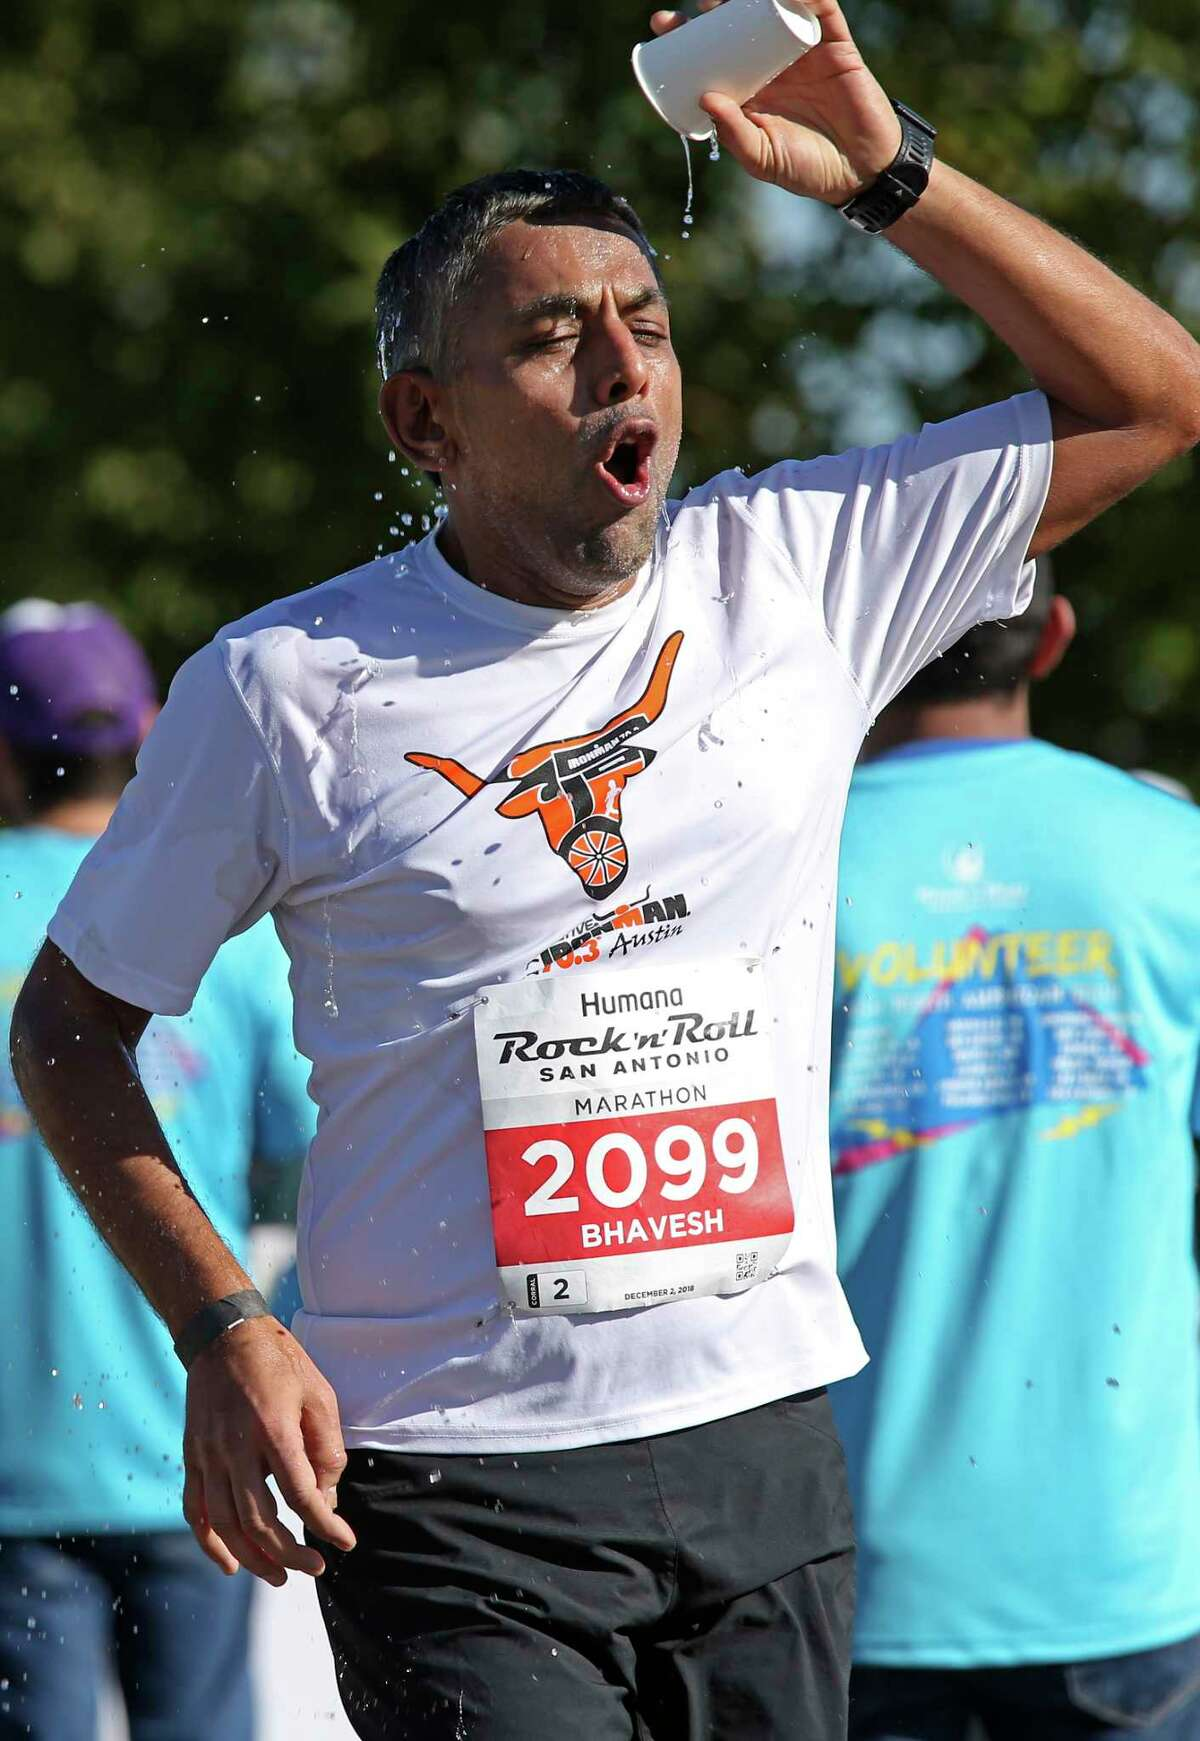 Bhavesh Patel, of Lakeway, Texas, refreshes himself at a water station between the 18 and 19 mile marker during the 2018 Humana Rock 'n' Roll San Antonio Marathon and 1/2 Marathon, Sunday, Dec. 2, 2018.